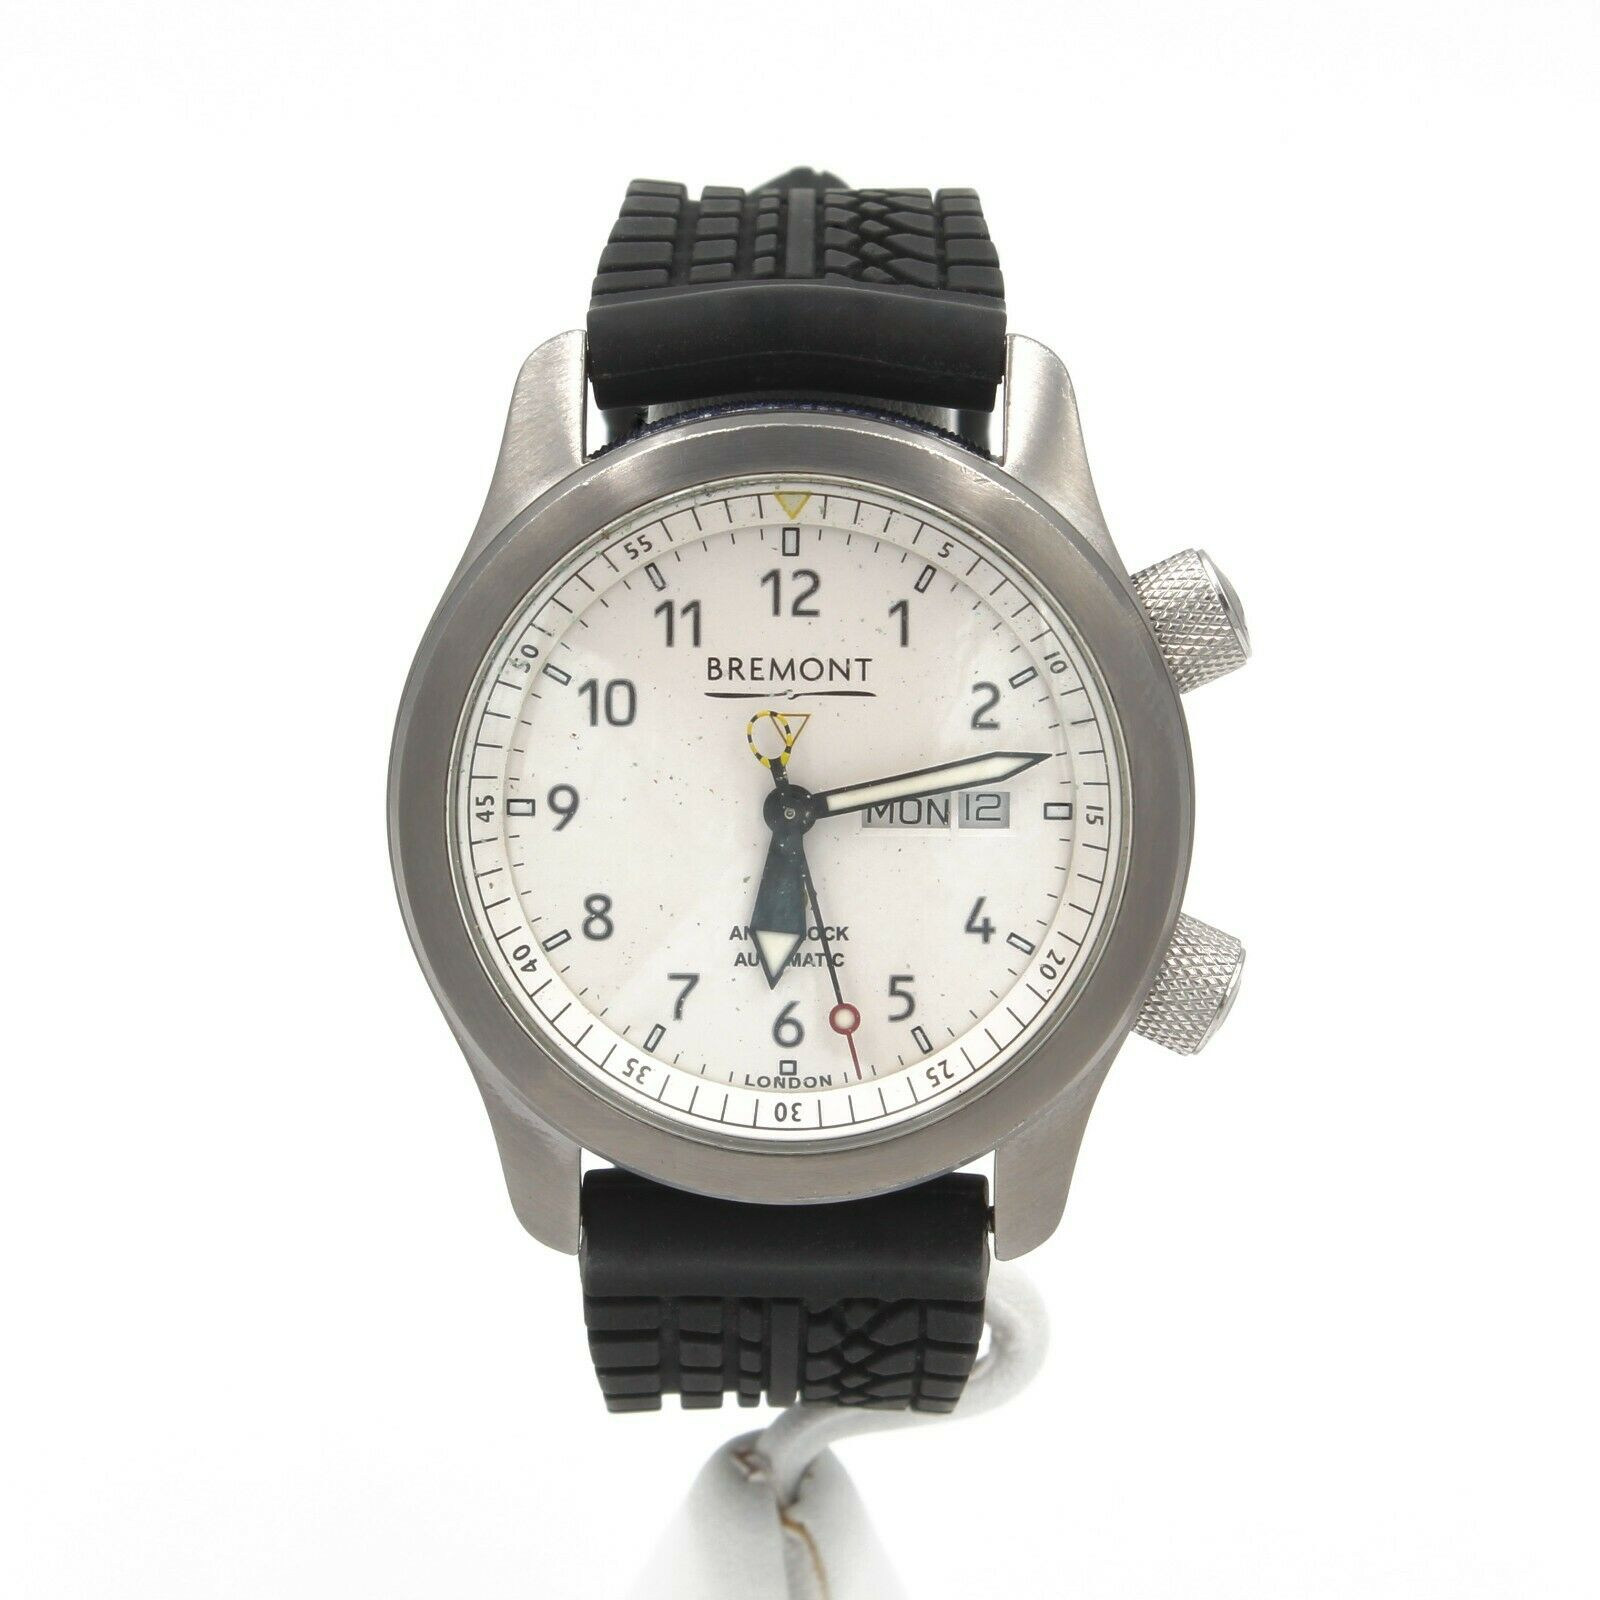 BREMONT CHRONOMETER MBII WHITE DIAL RUBBER STRAP W/BOX PAPERS AS IS NR #8239 - watch picture 1